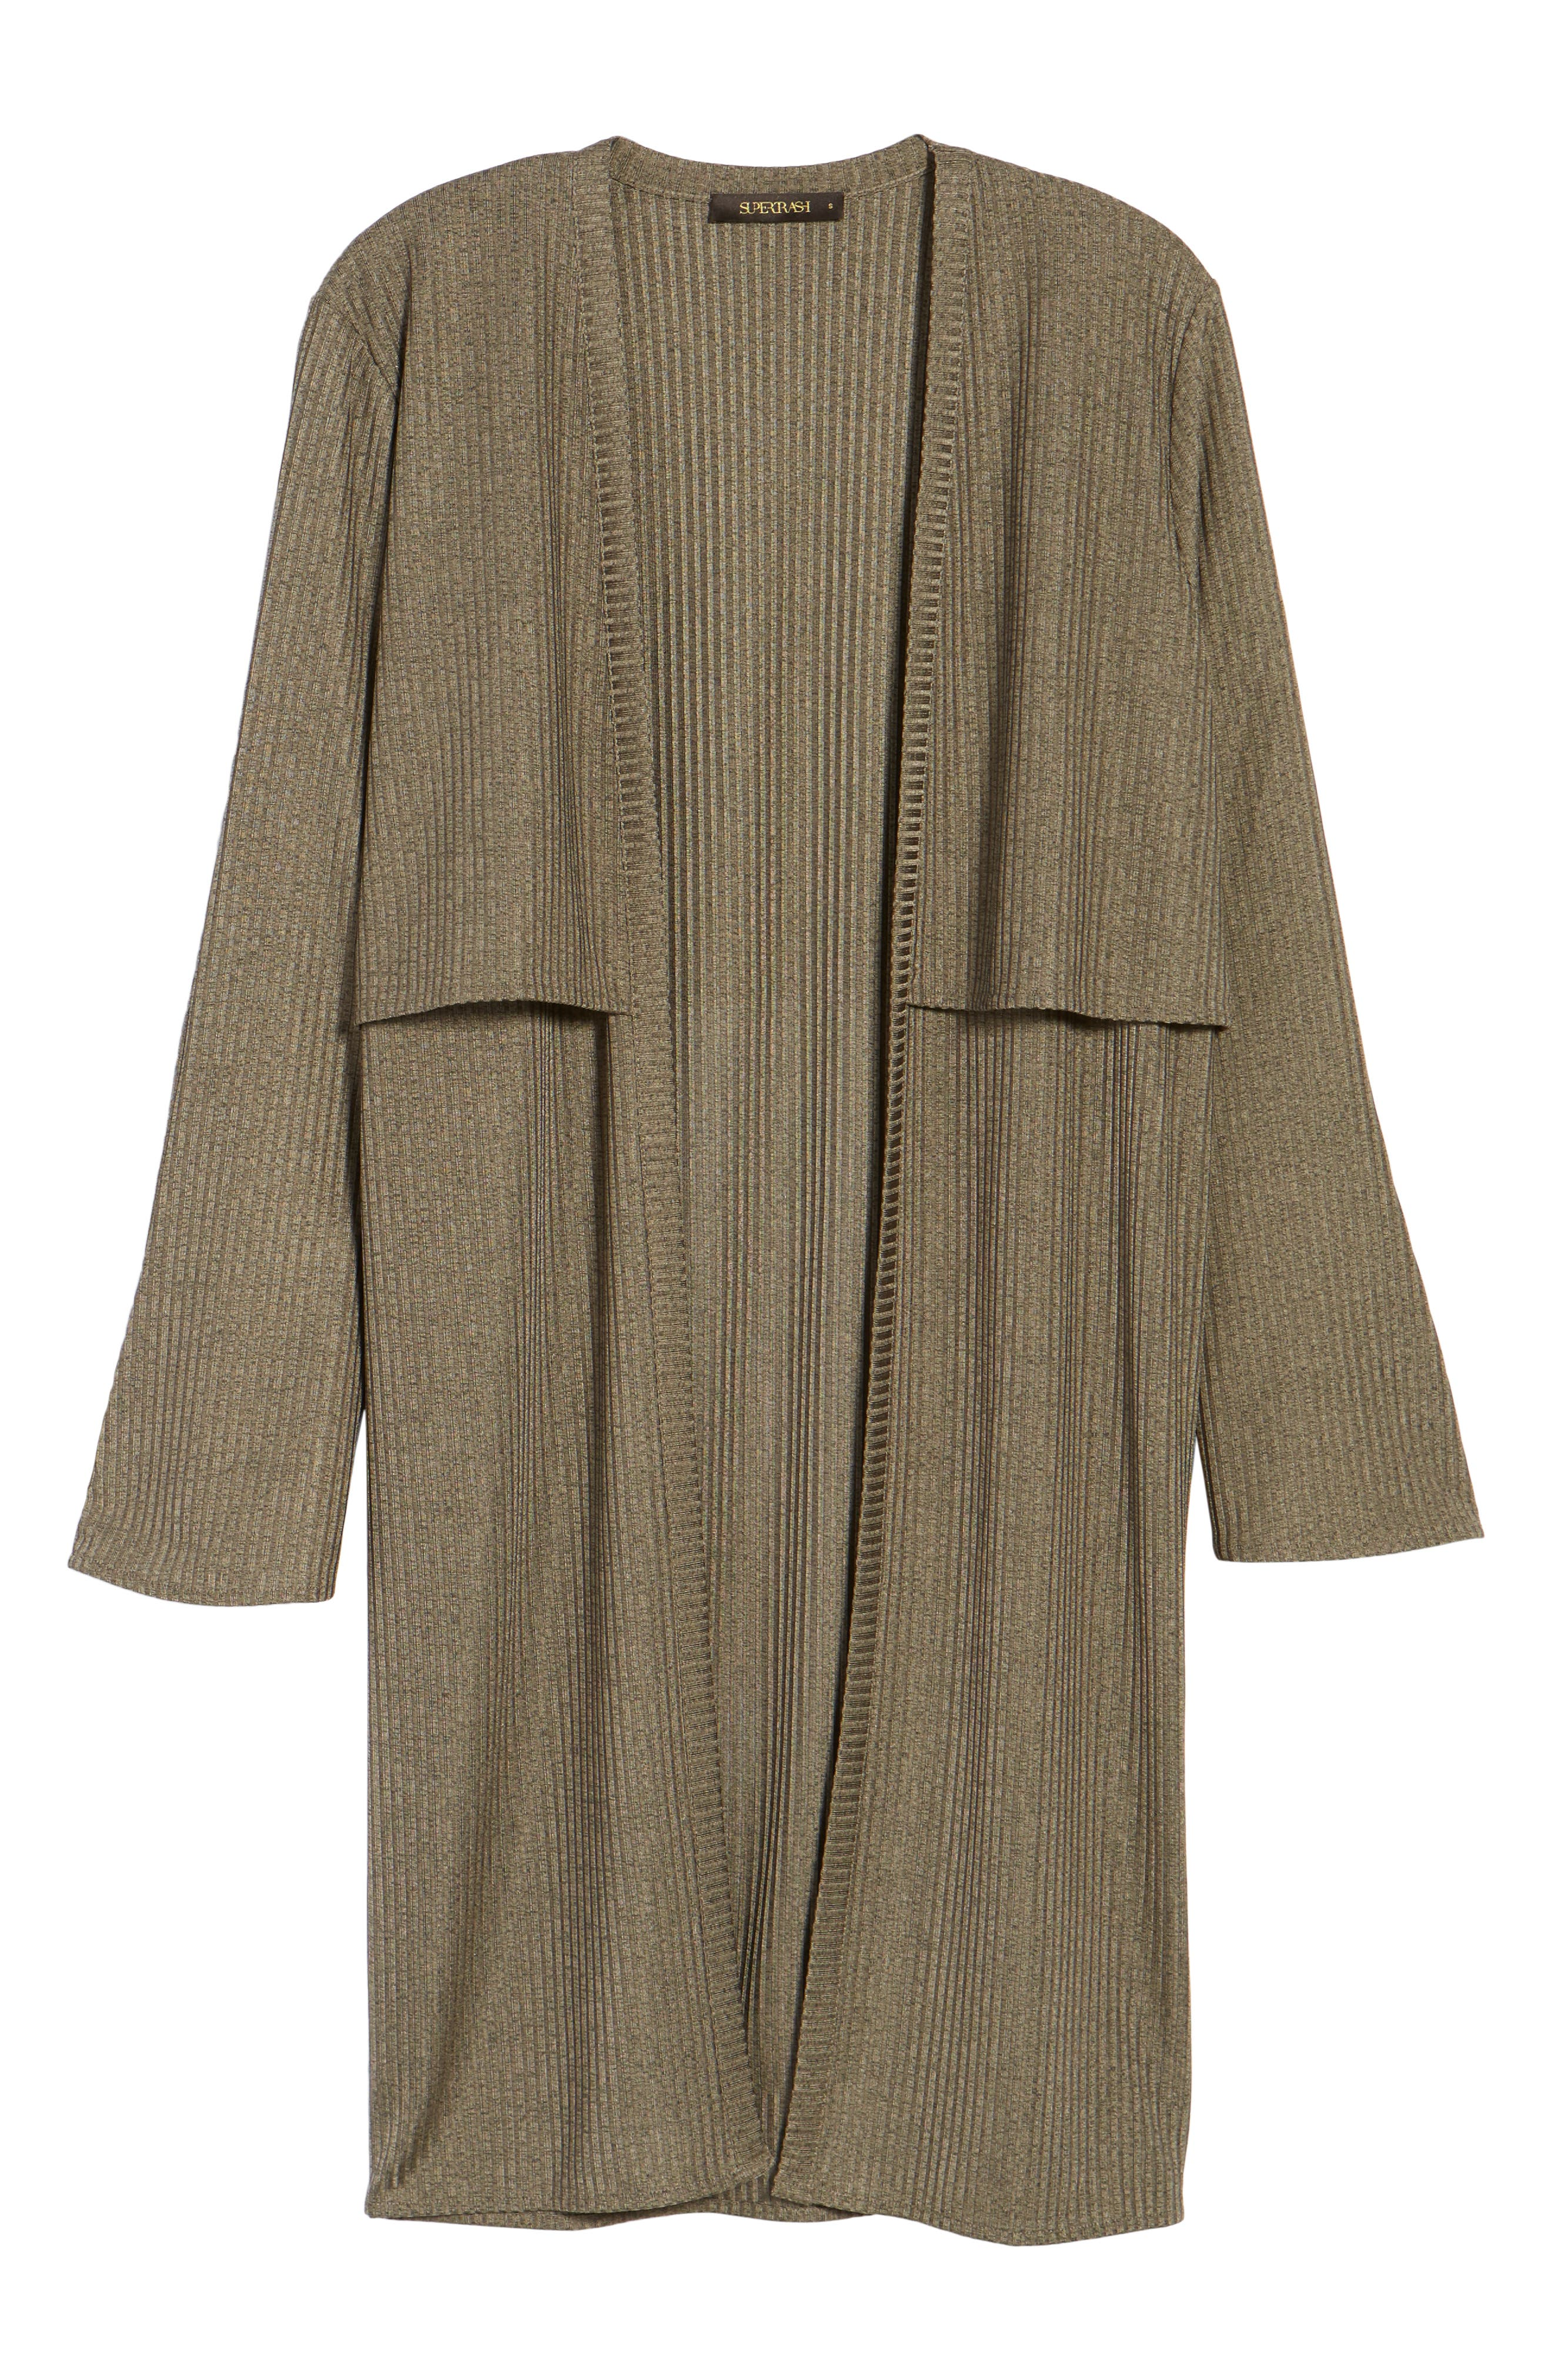 Casey Open Front Cardigan,                             Alternate thumbnail 6, color,                             300